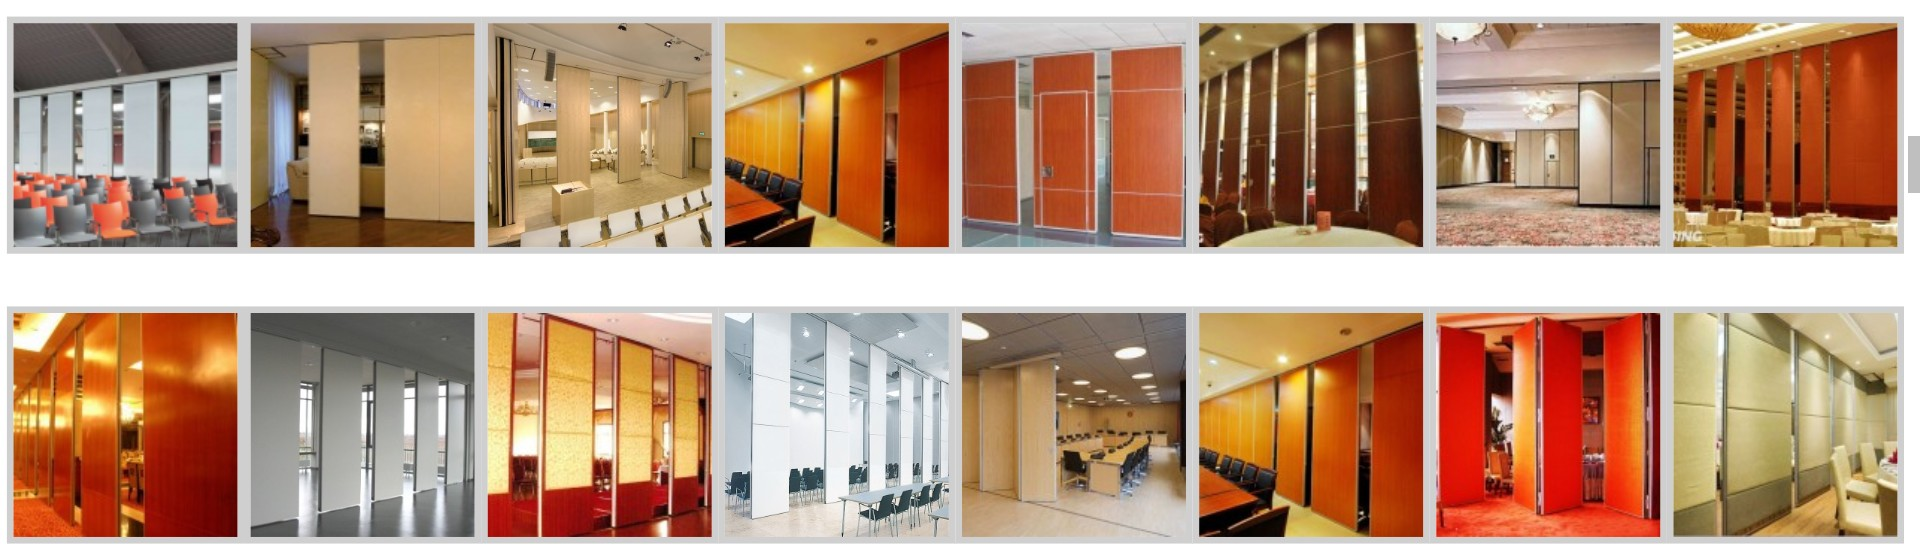 Borneo Pintu Lipat Central Pabrication Movable Acoustic Indonesia